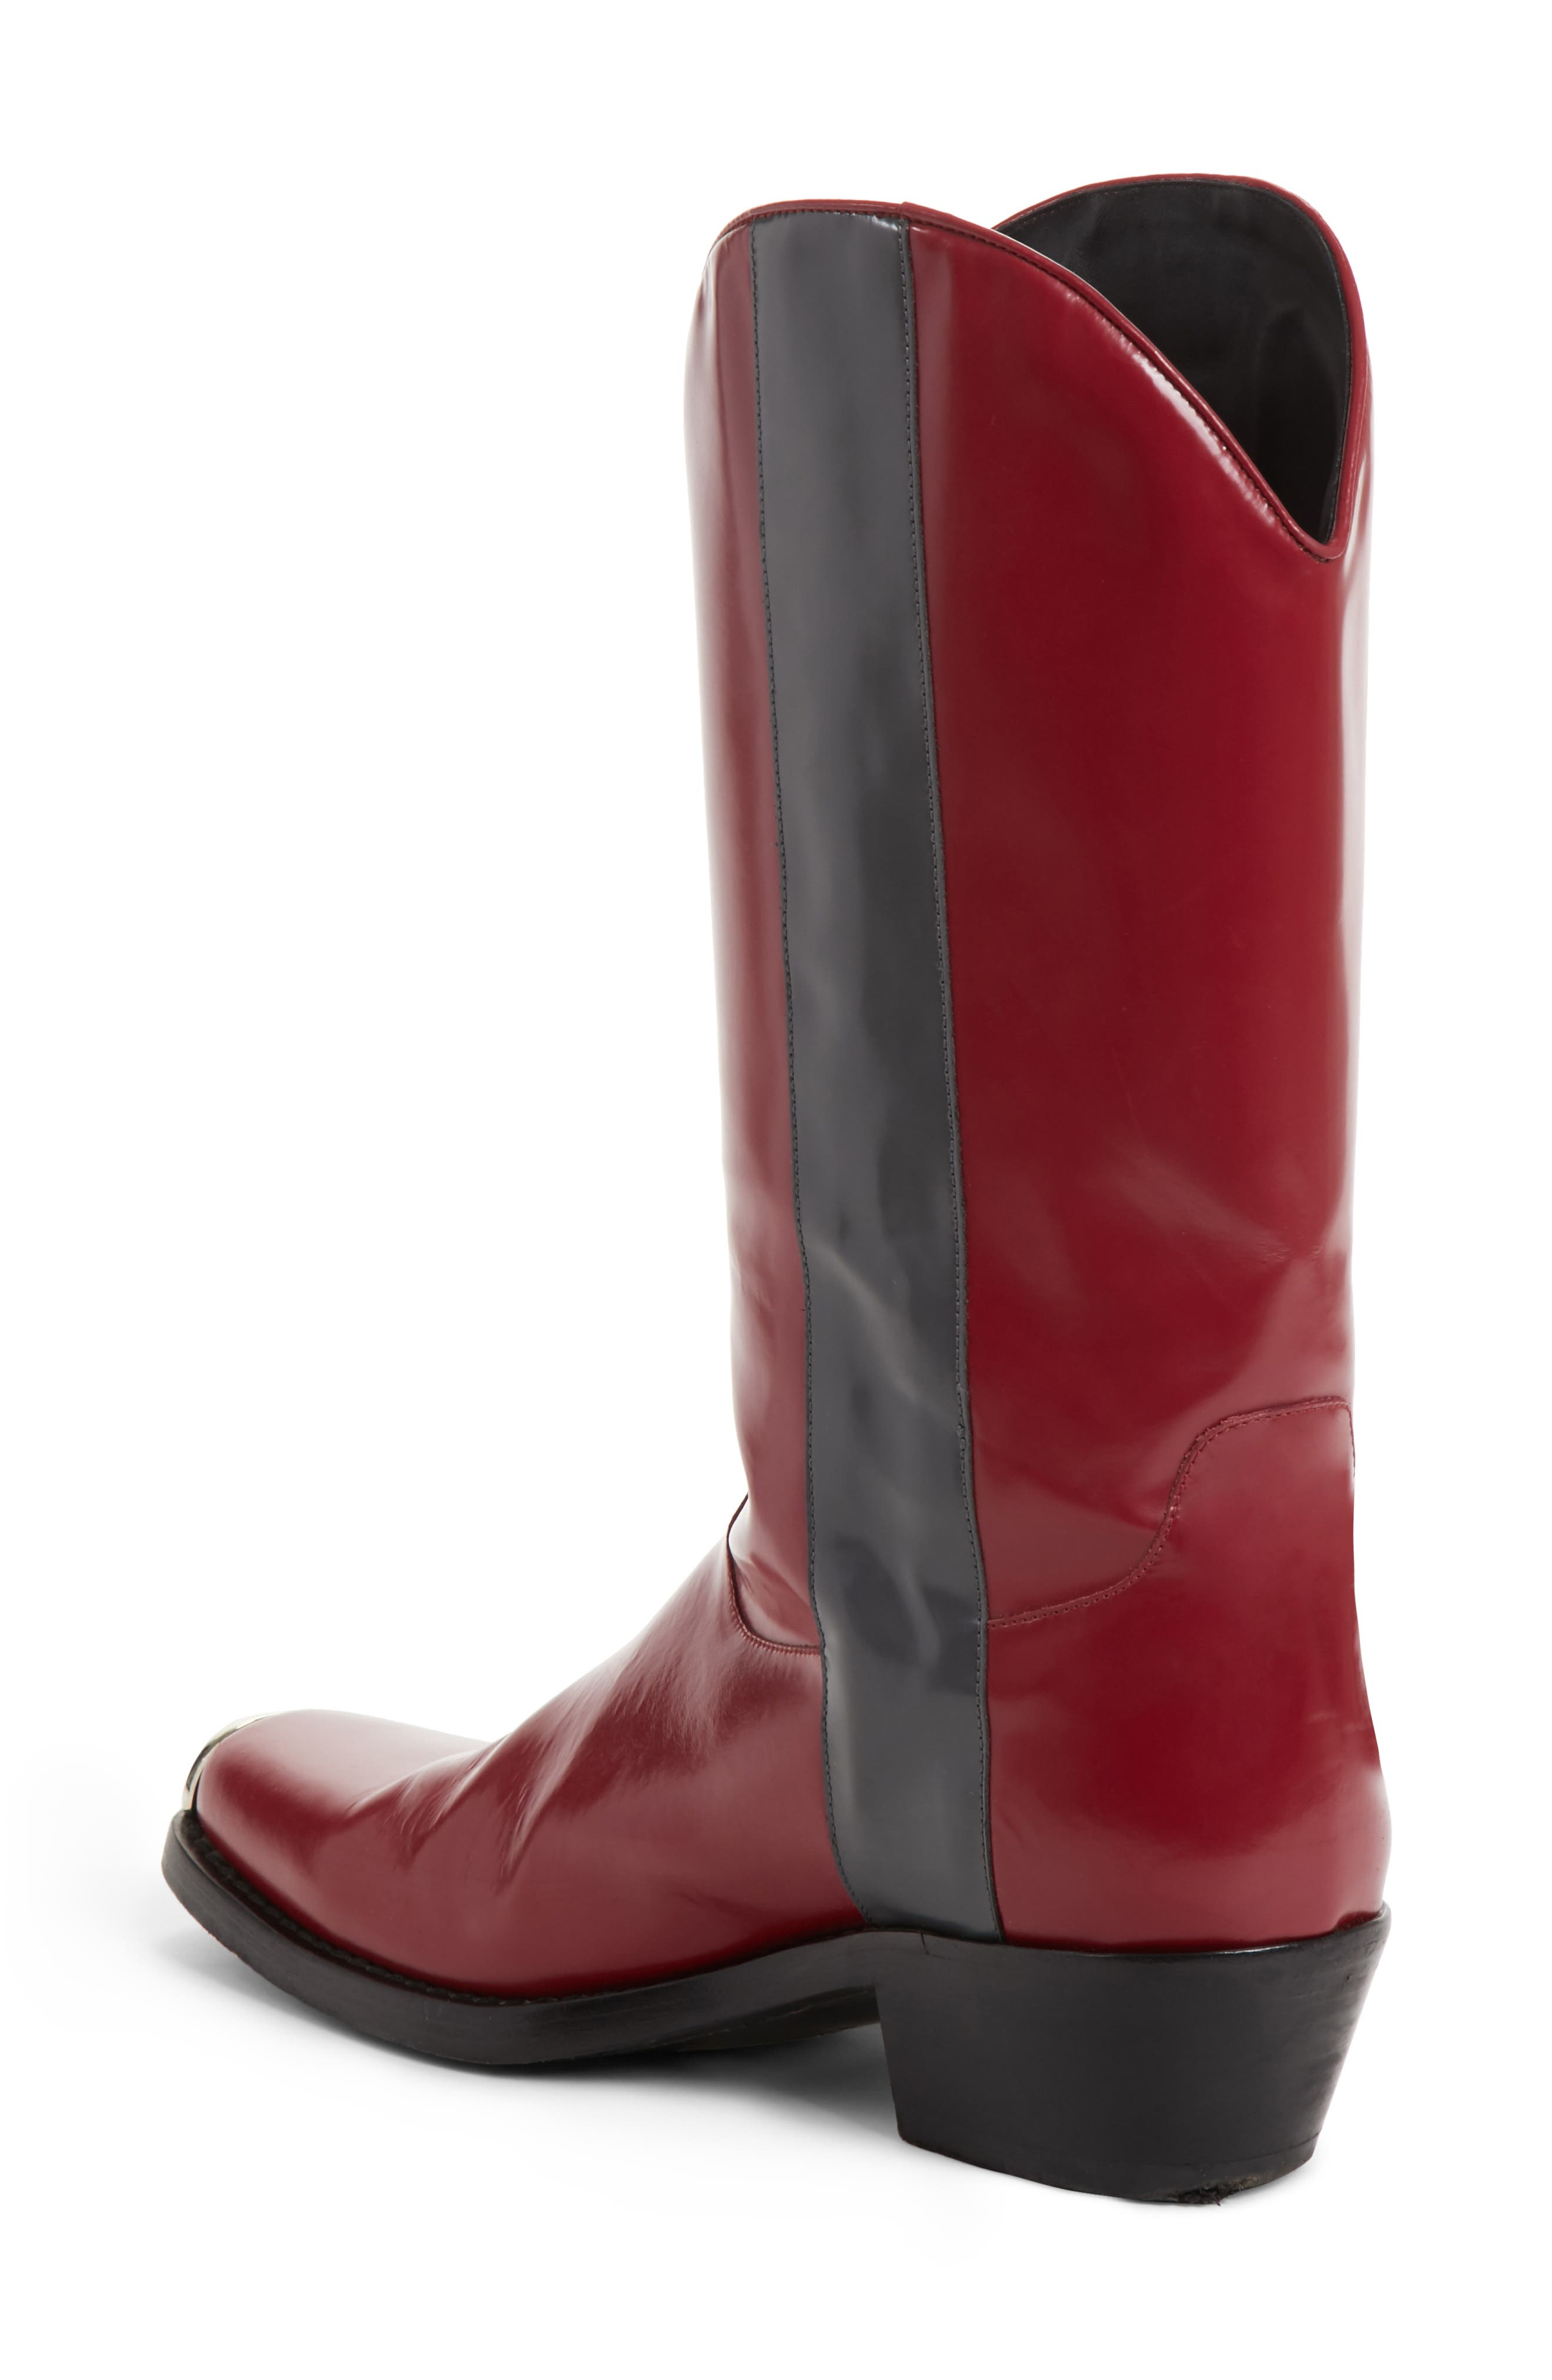 Chris Western Metal Tip Boot,                             Alternate thumbnail 2, color,                             Dark Red/ Anthracite Leather